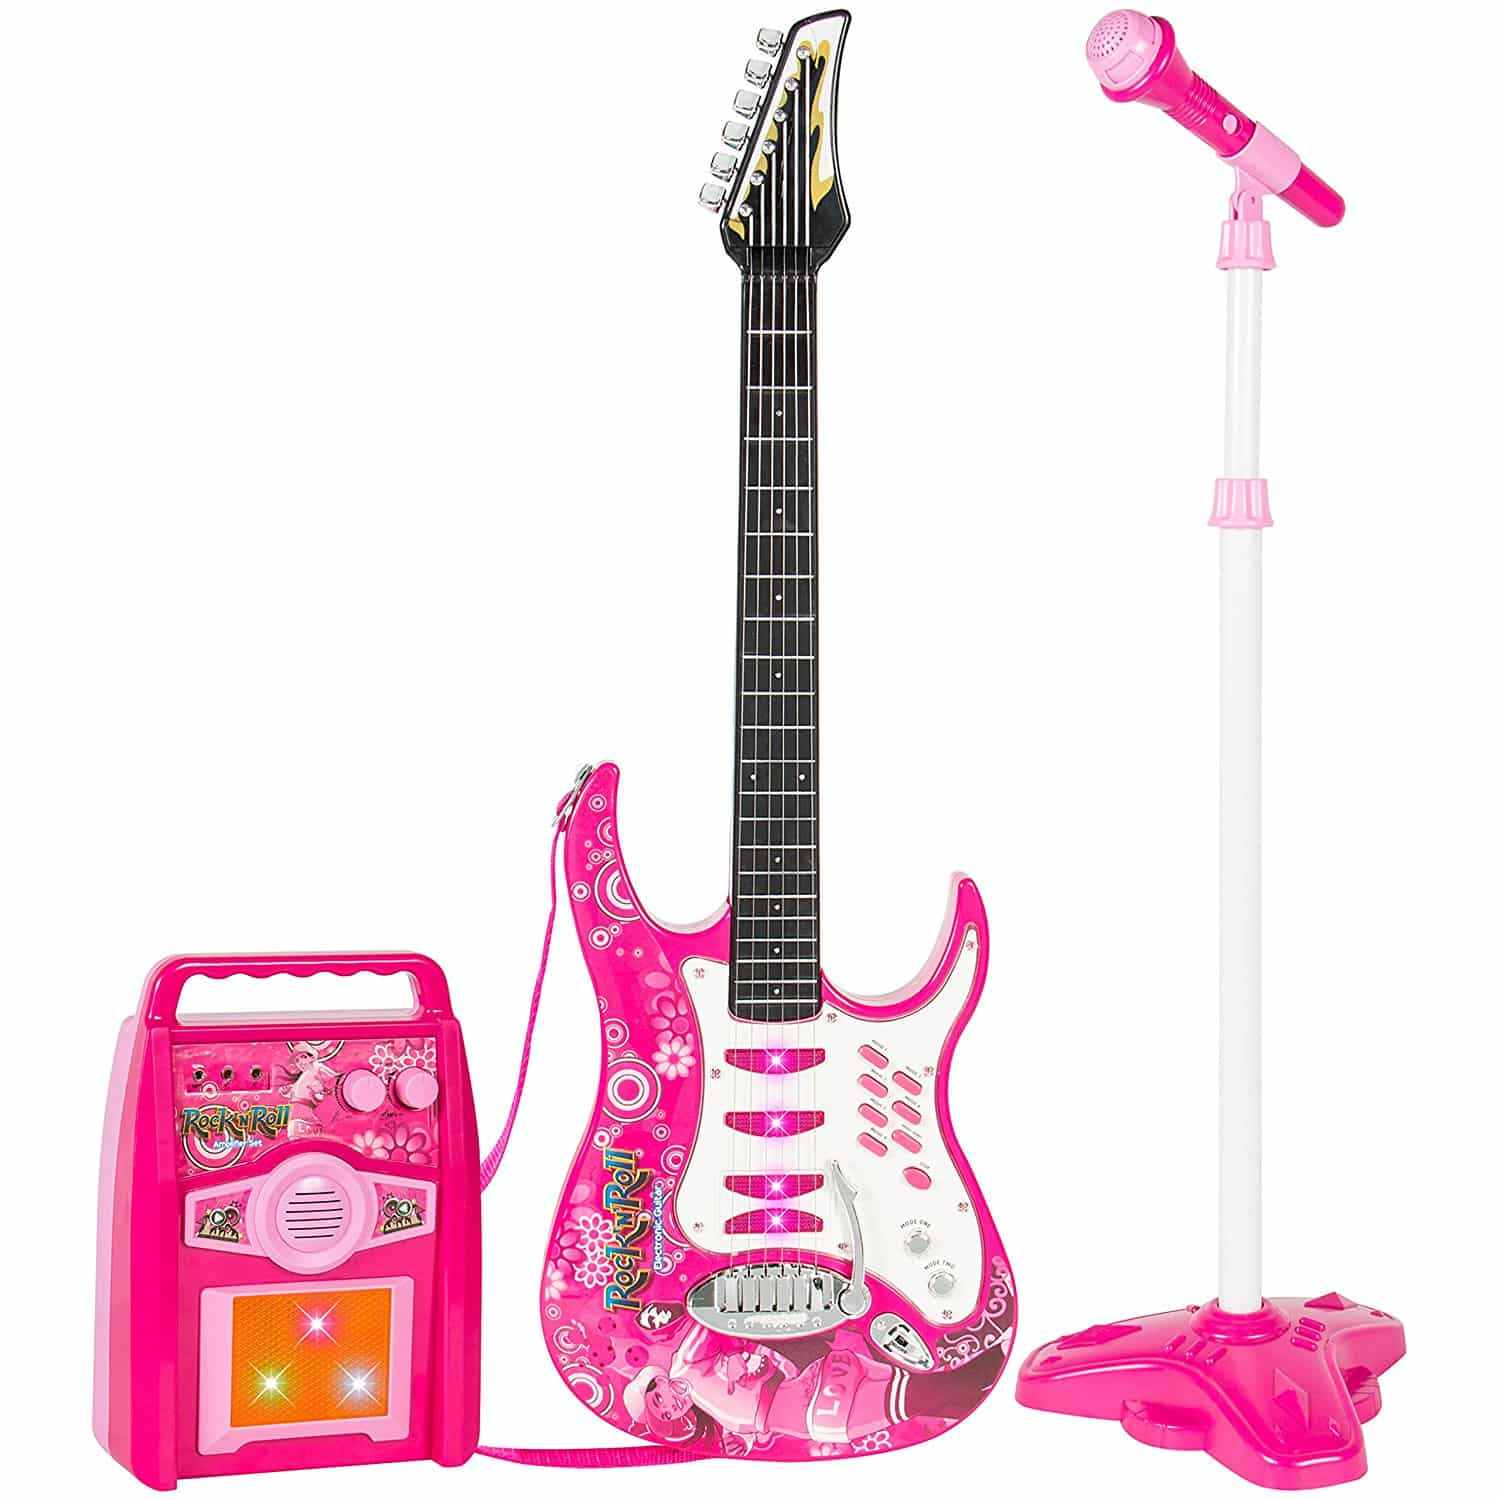 Guitarra Eletrica Infantil Rosa para Meninas Best Choice Kids Electric Guitar